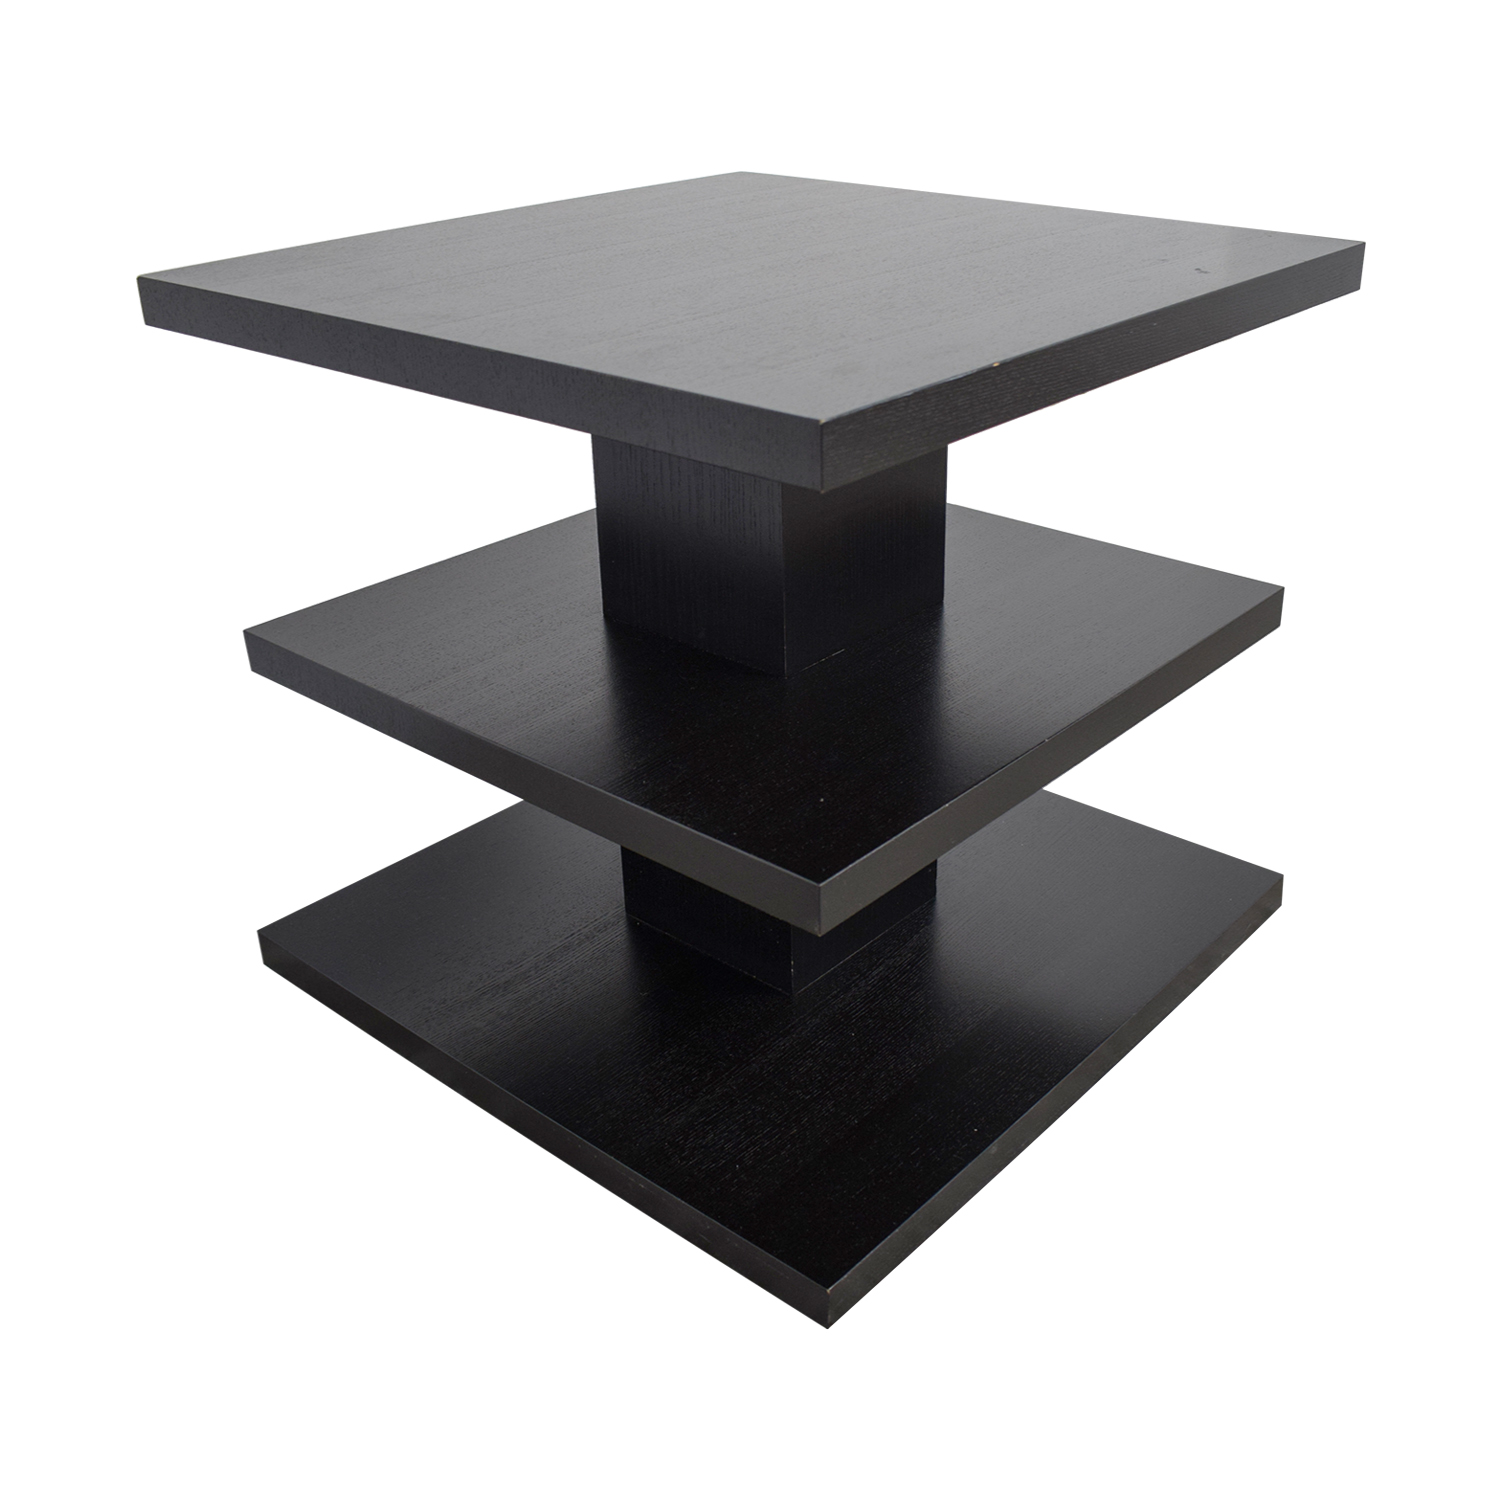 Ethan Allen Oly Lateral End Table sale